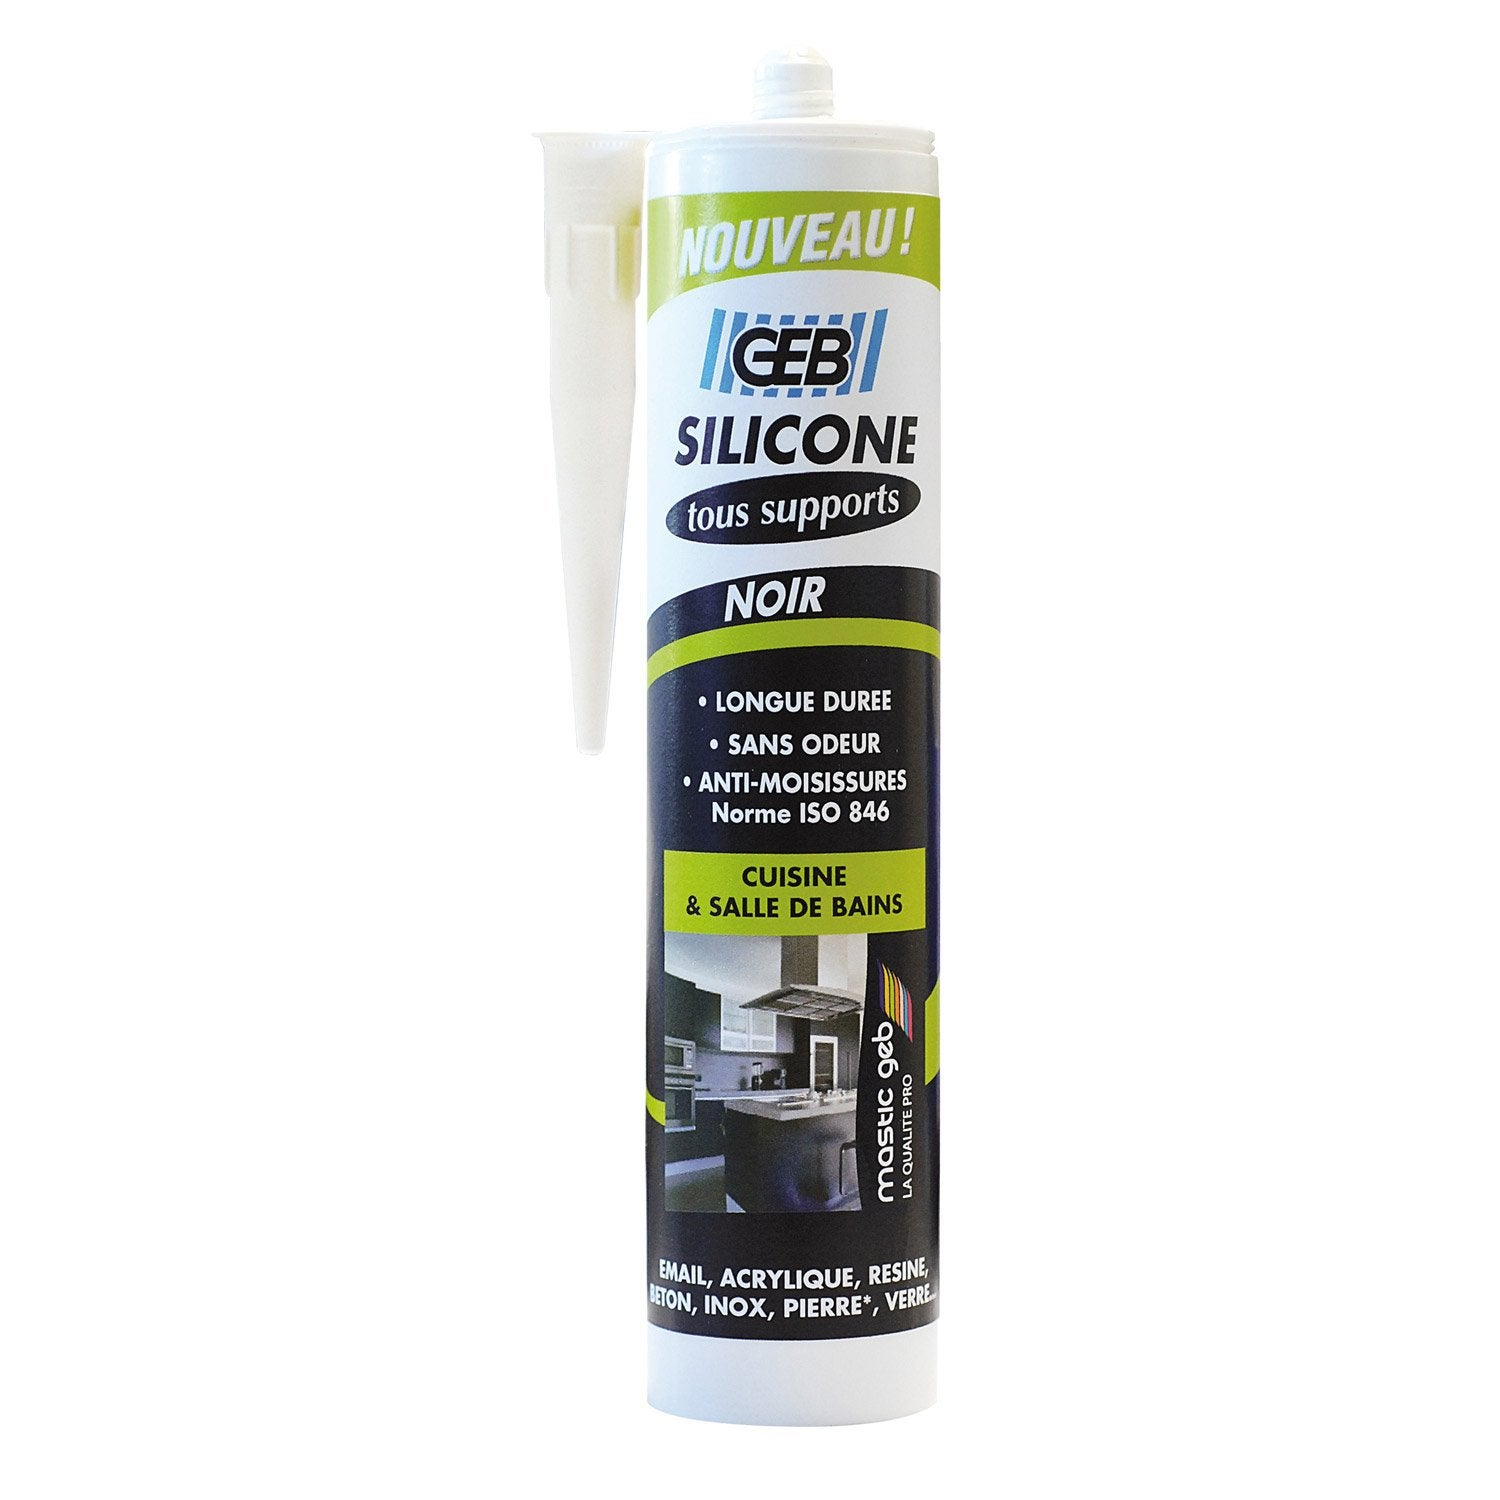 Silicone geb noir 280 ml leroy merlin for Peinture haute temperature leroy merlin